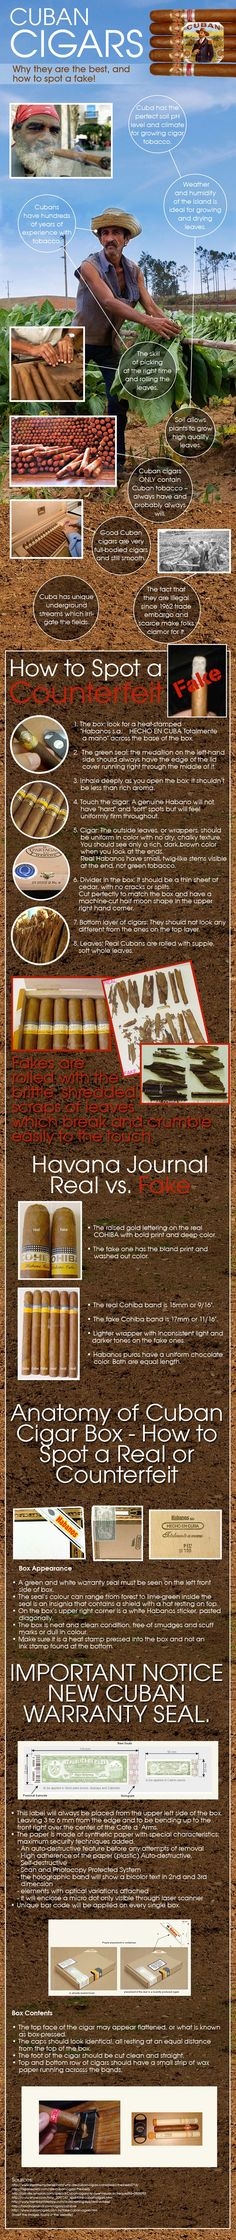 Cuban Cigars - Why They Are the Best and How to Spot a Fake | The Marque